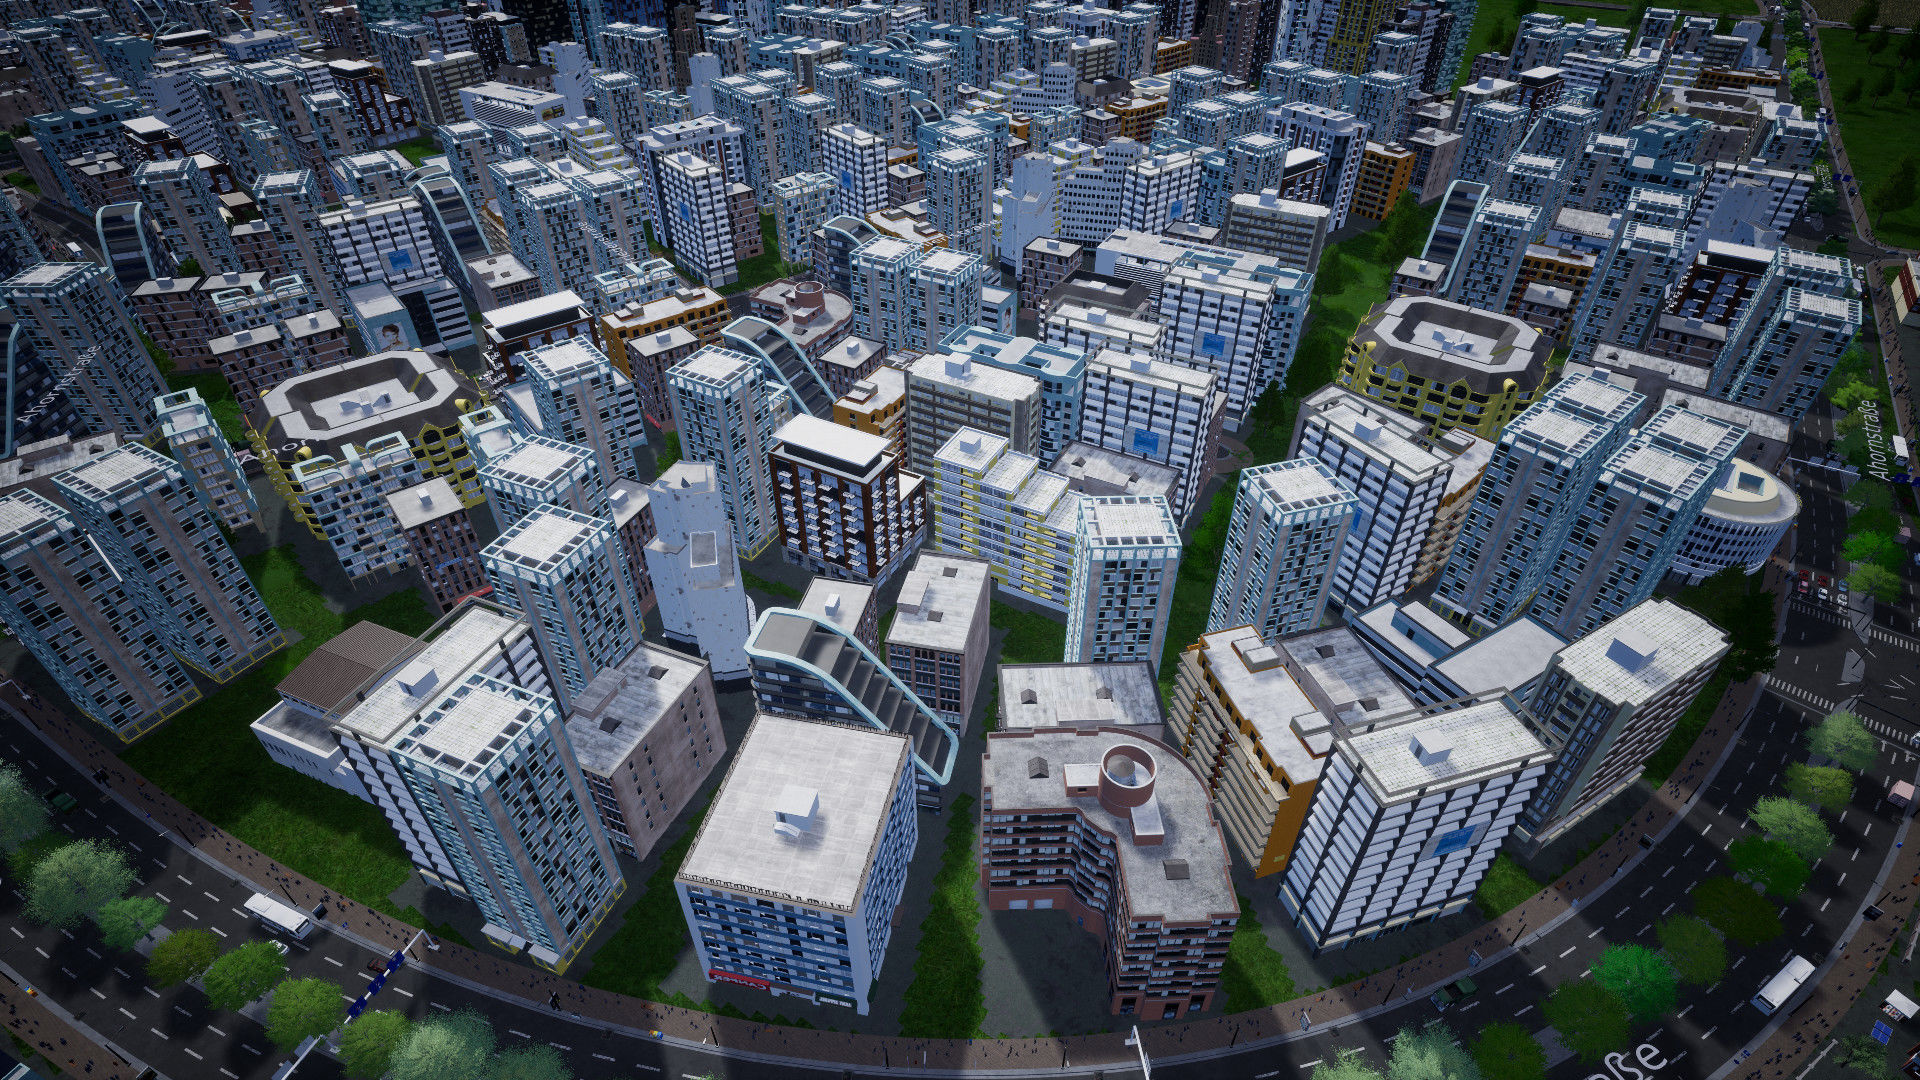 City building game Highrise City announced for PC